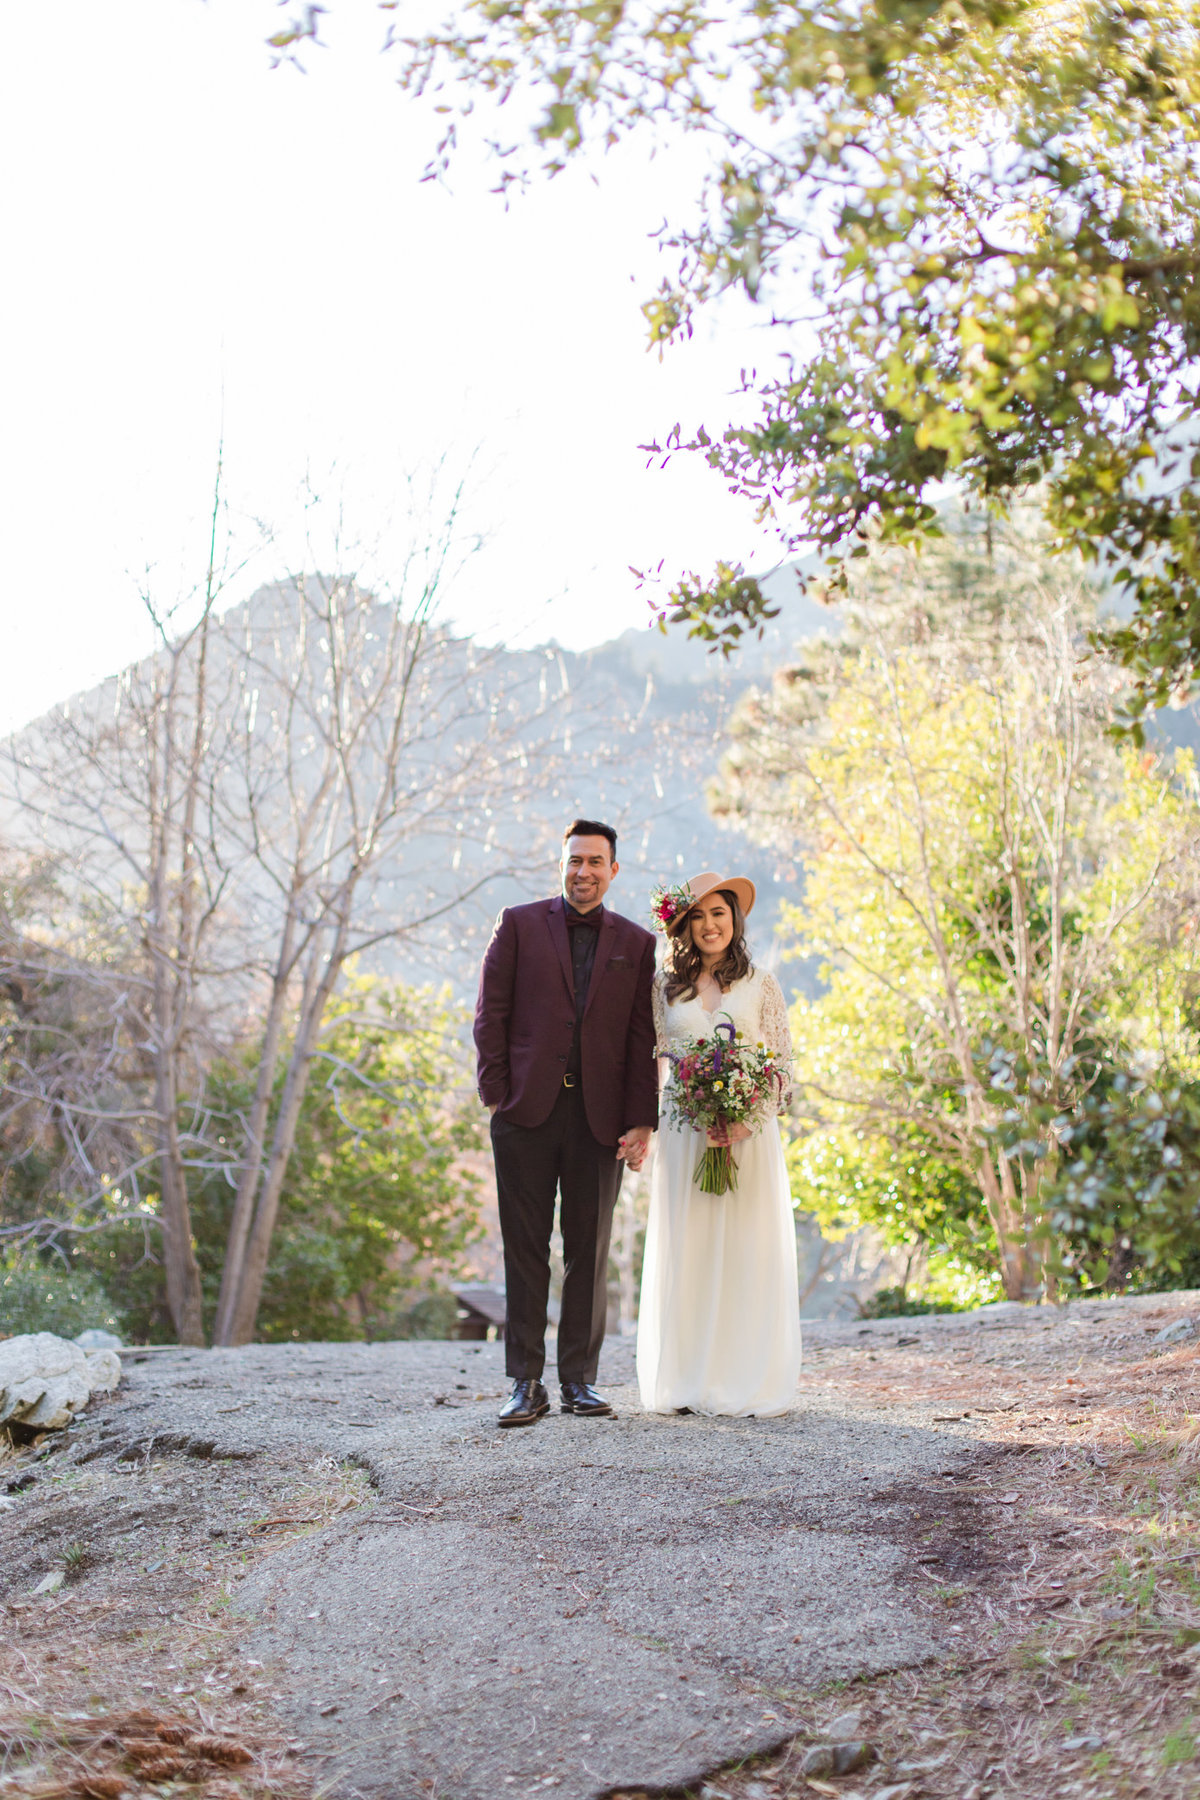 Mt. Baldy Elopement, Mt. Baldy Styled Shoot, Mt. Baldy Wedding, Forest Elopement, Forest Wedding, Boho Wedding, Boho Elopement, Mt. Baldy Boho, Forest Boho, Woodland Boho-26